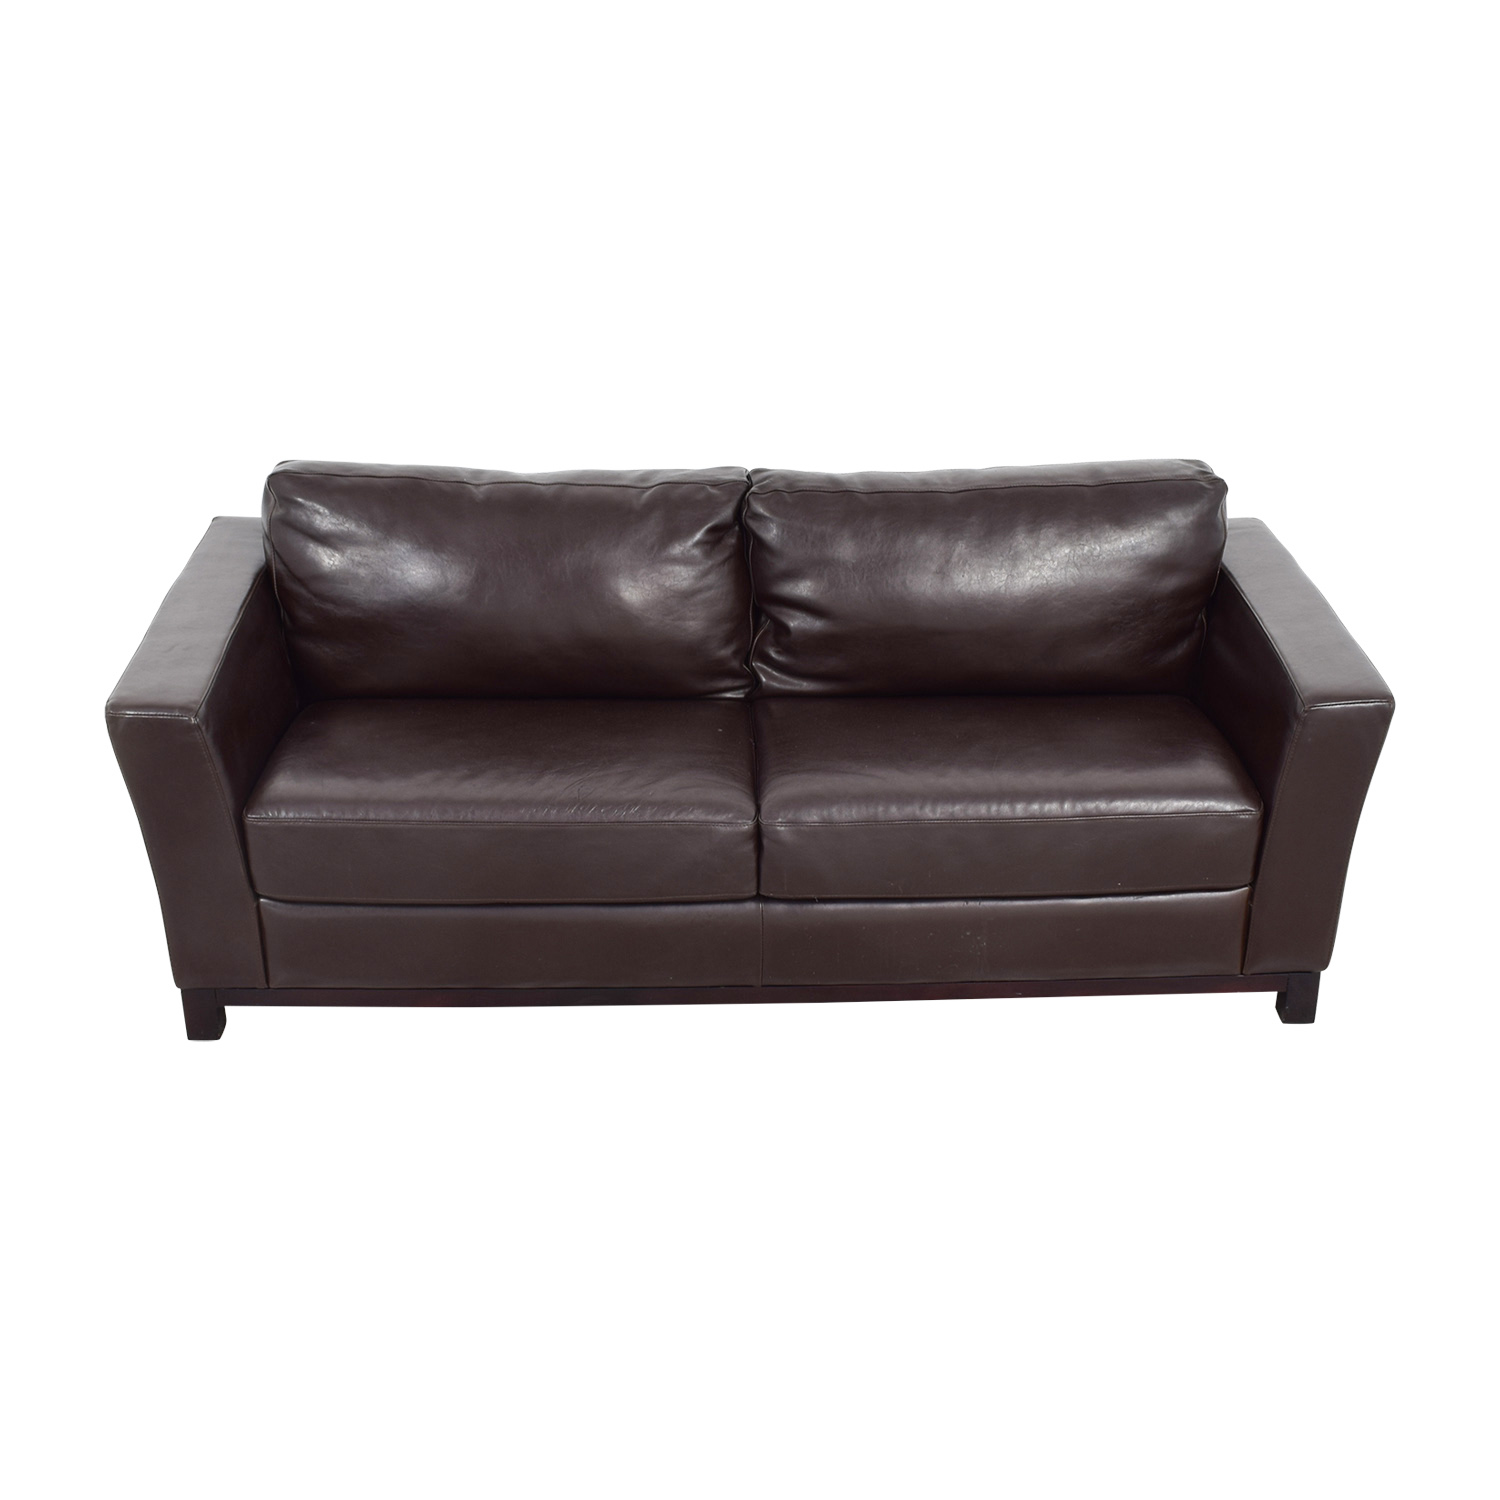 Used sofas online used furniture for wplace design thesofa for Used furniture online